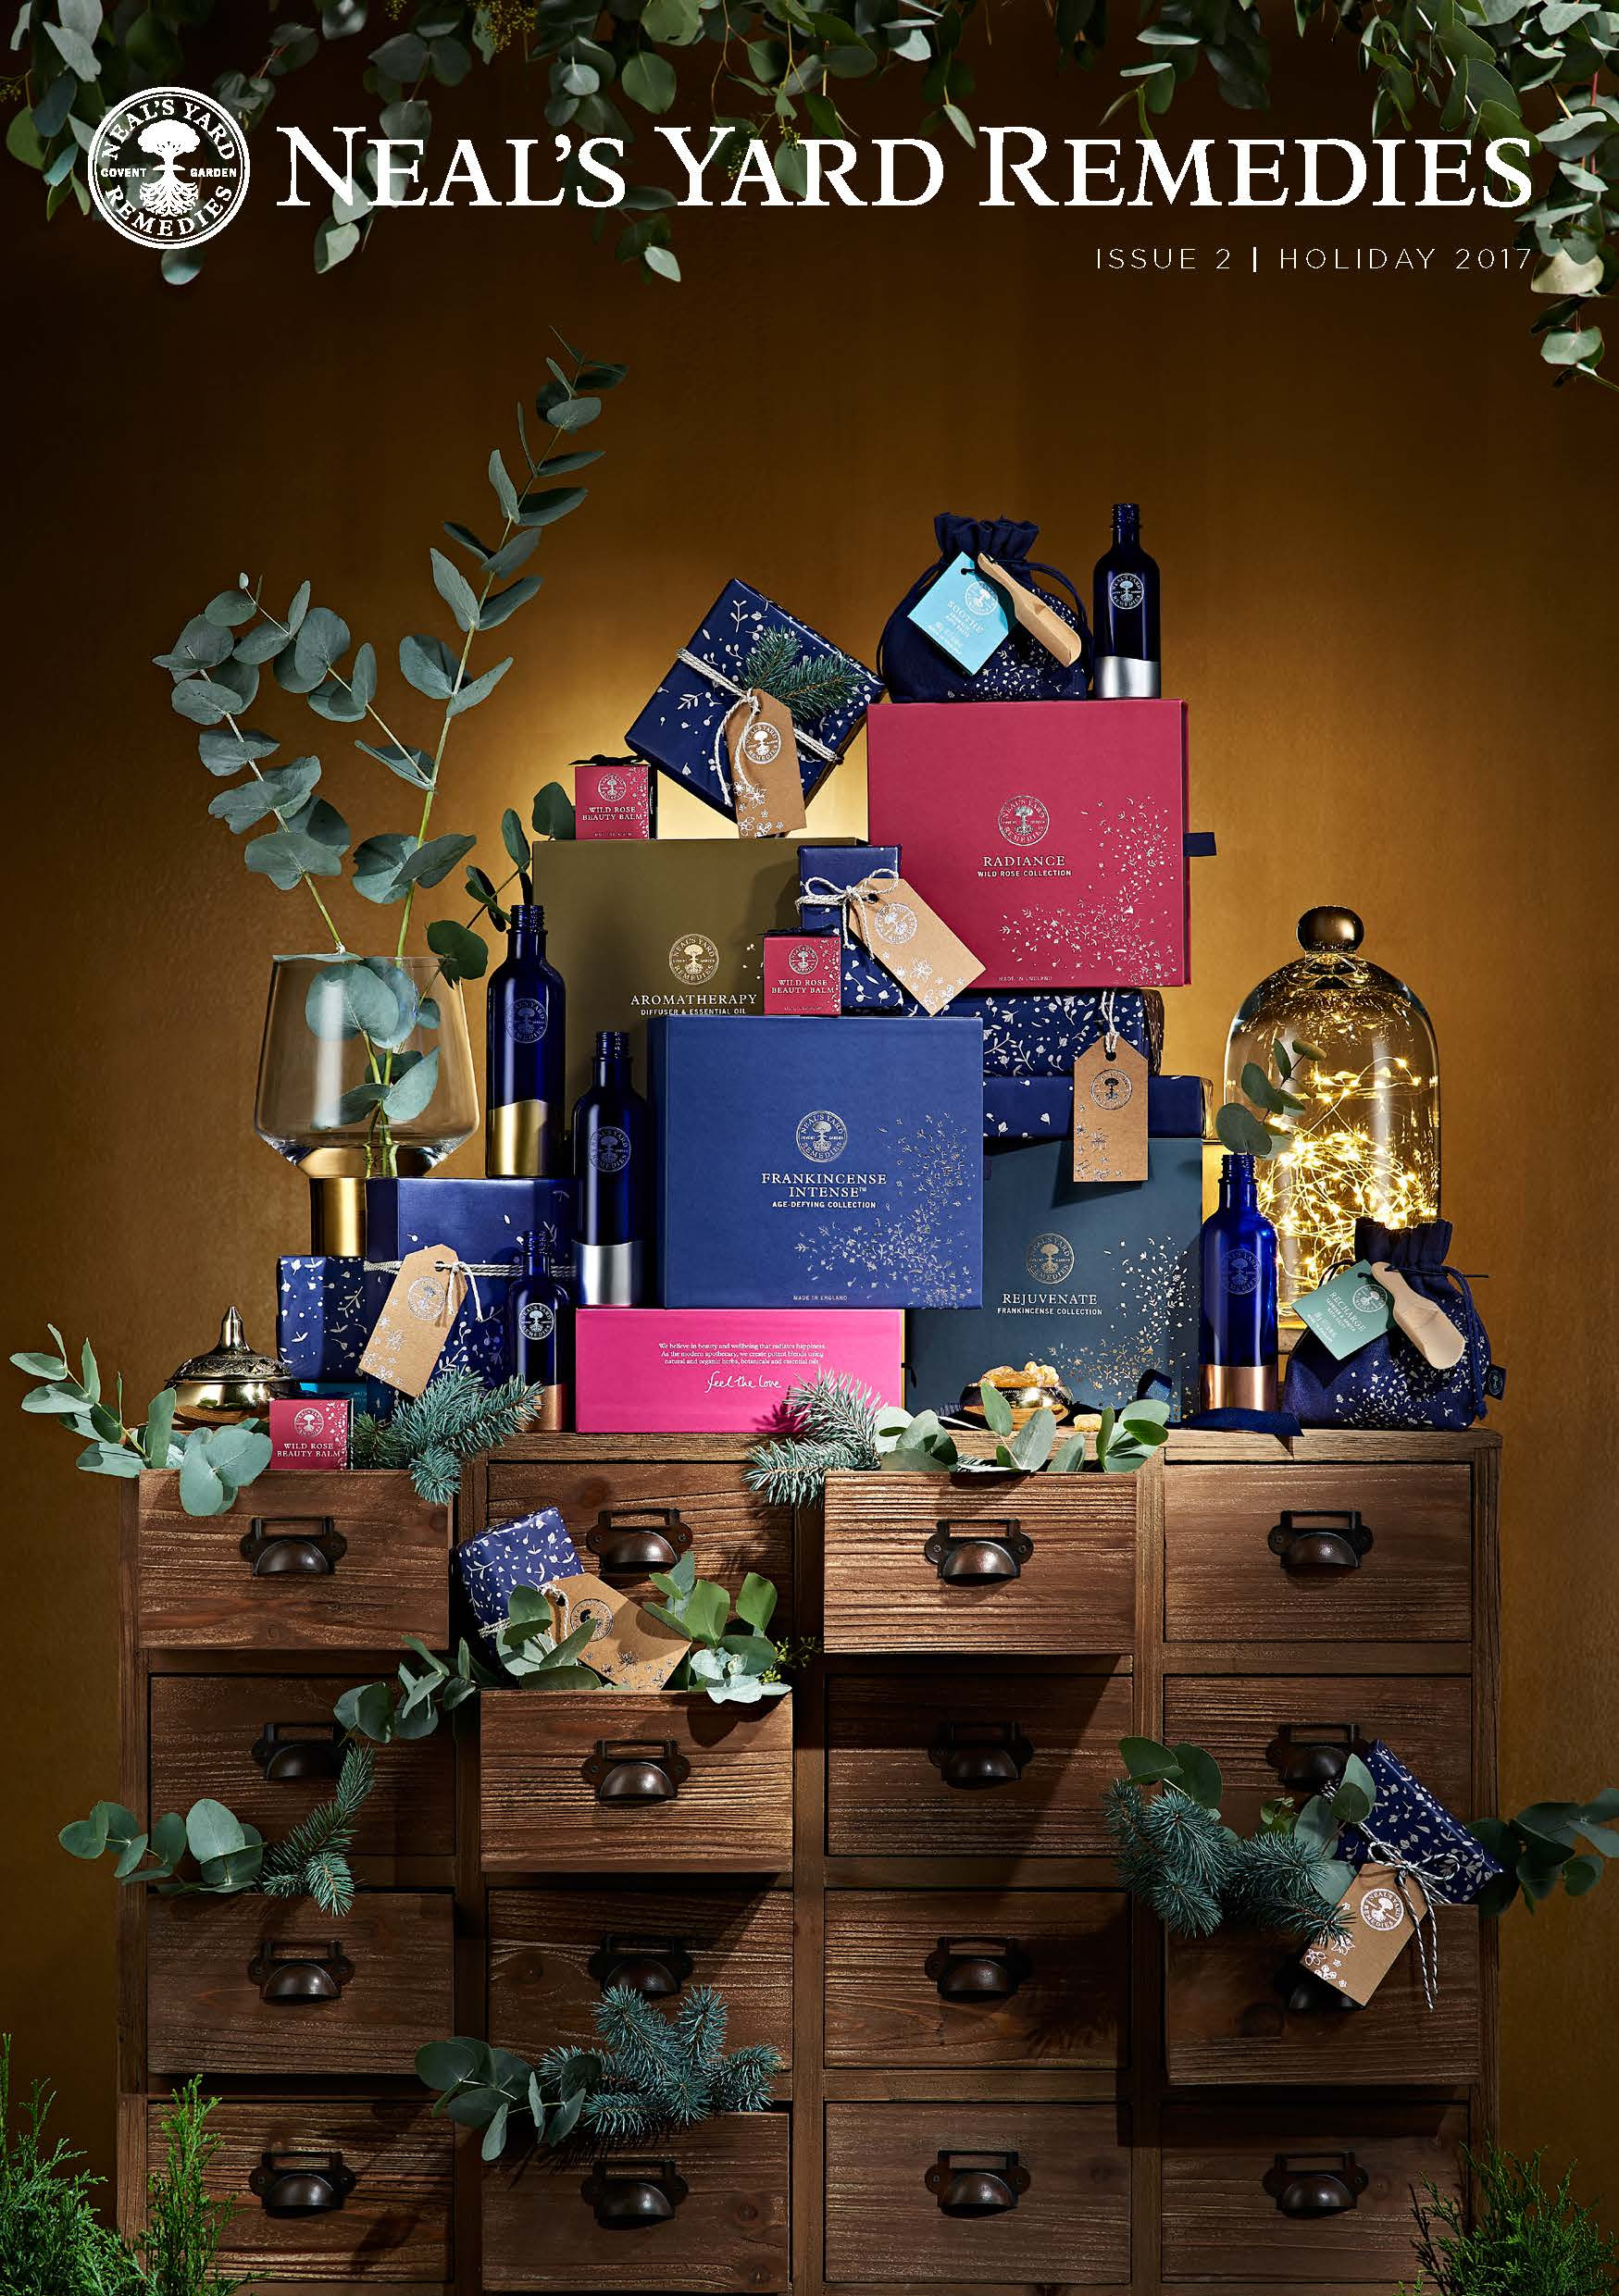 NYR Organic Neal's Yard Remedies